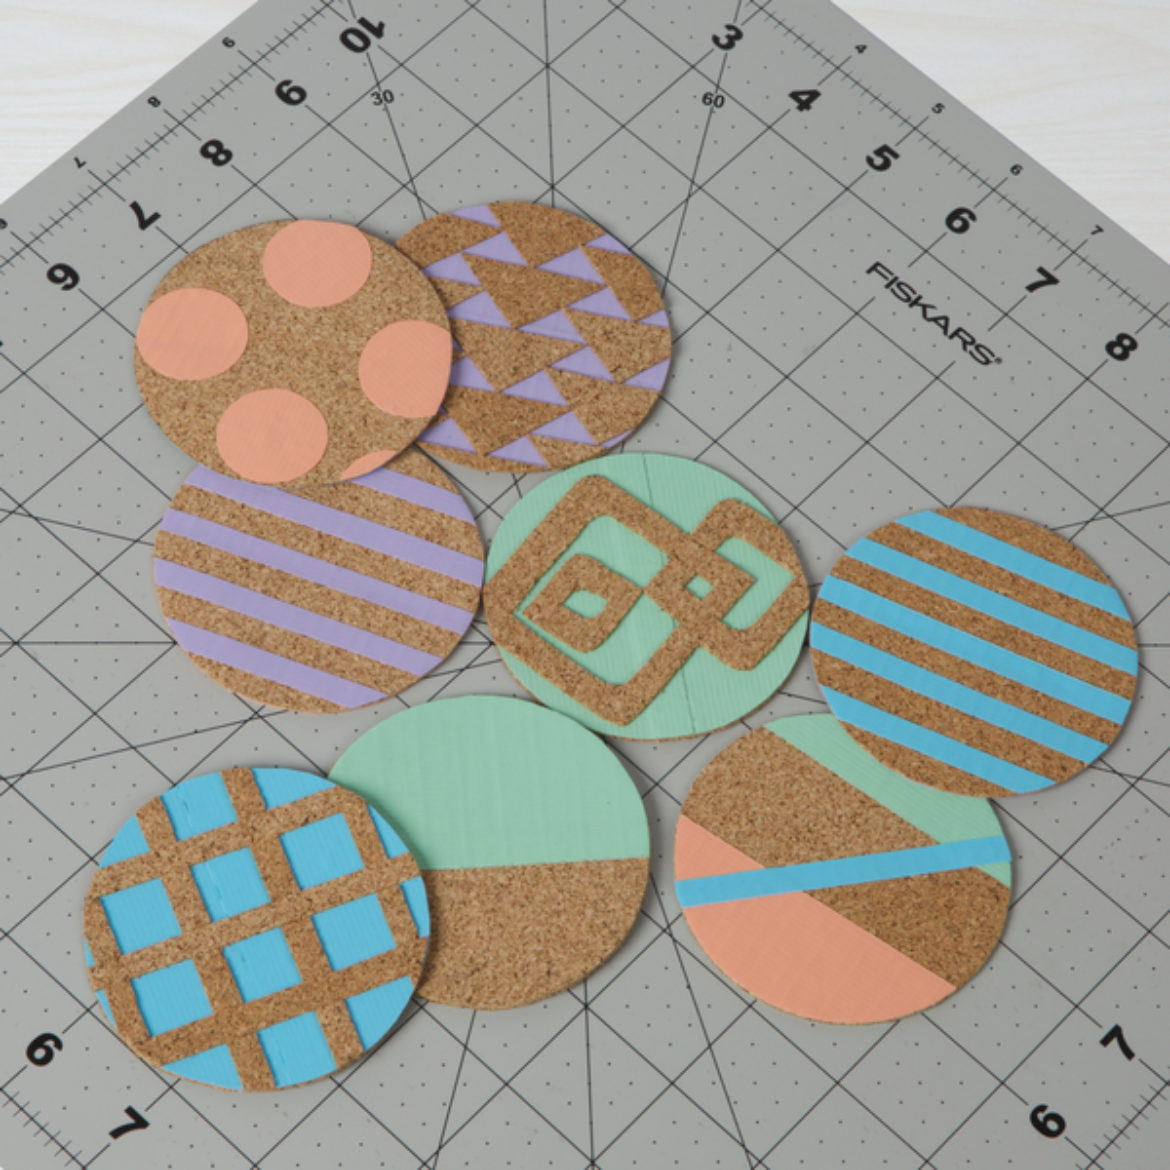 Various patterns and designs on other coasters for inspiration